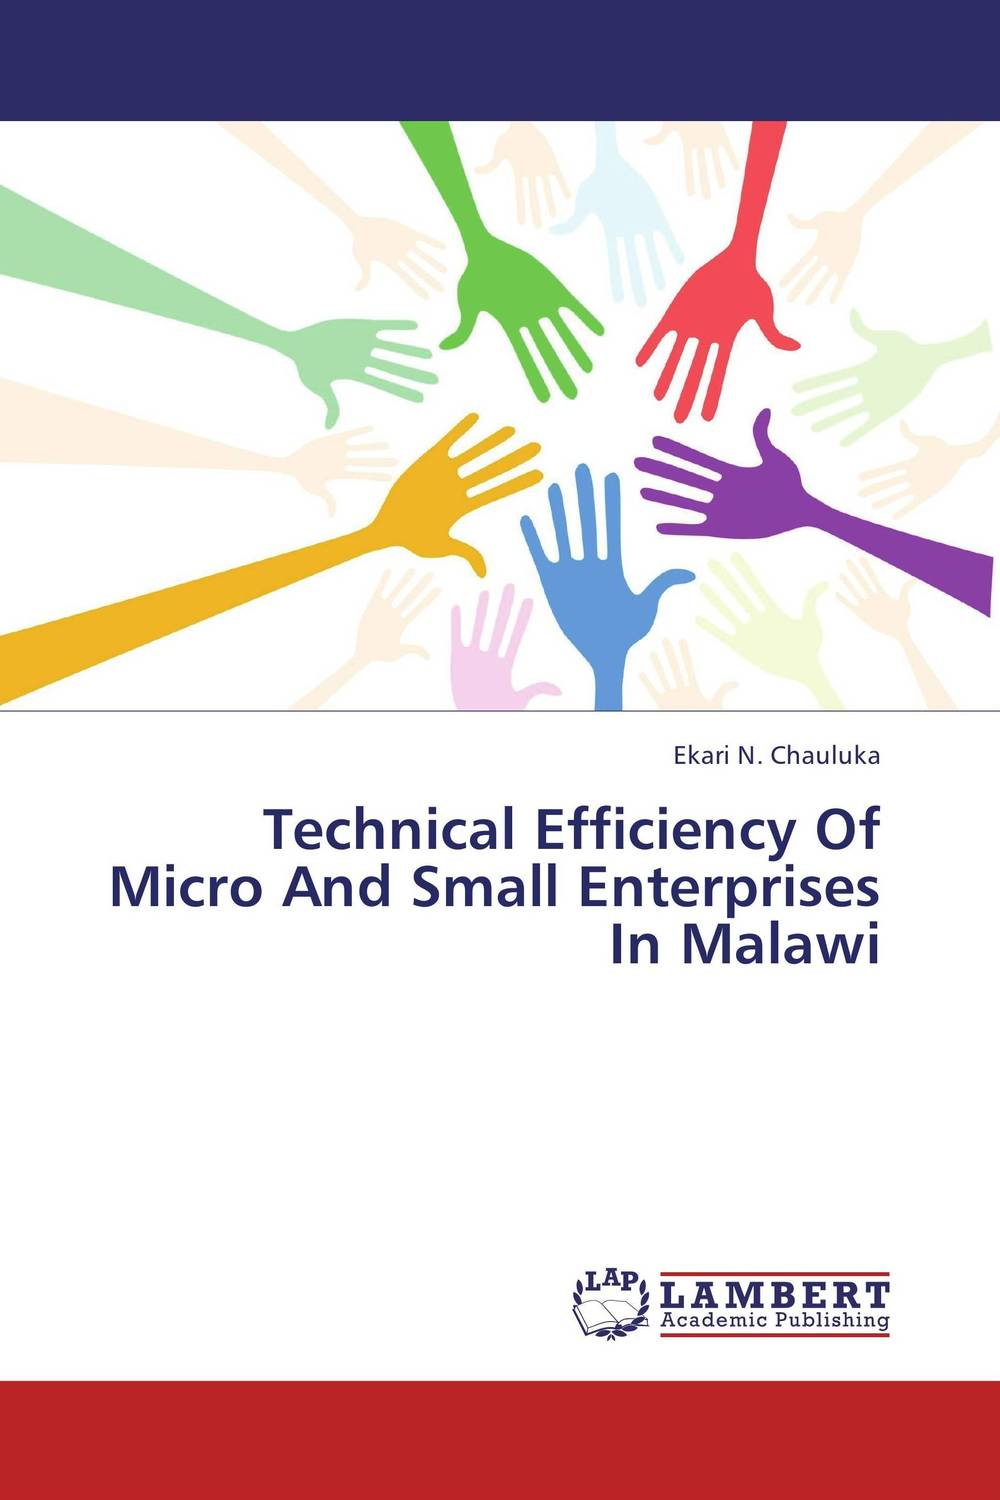 Technical Efficiency Of Micro And Small Enterprises In Malawi javed mahmood jasra dr babar zaheer butt and dr kashif ur rehman determinants of business success of small and medium enterprises